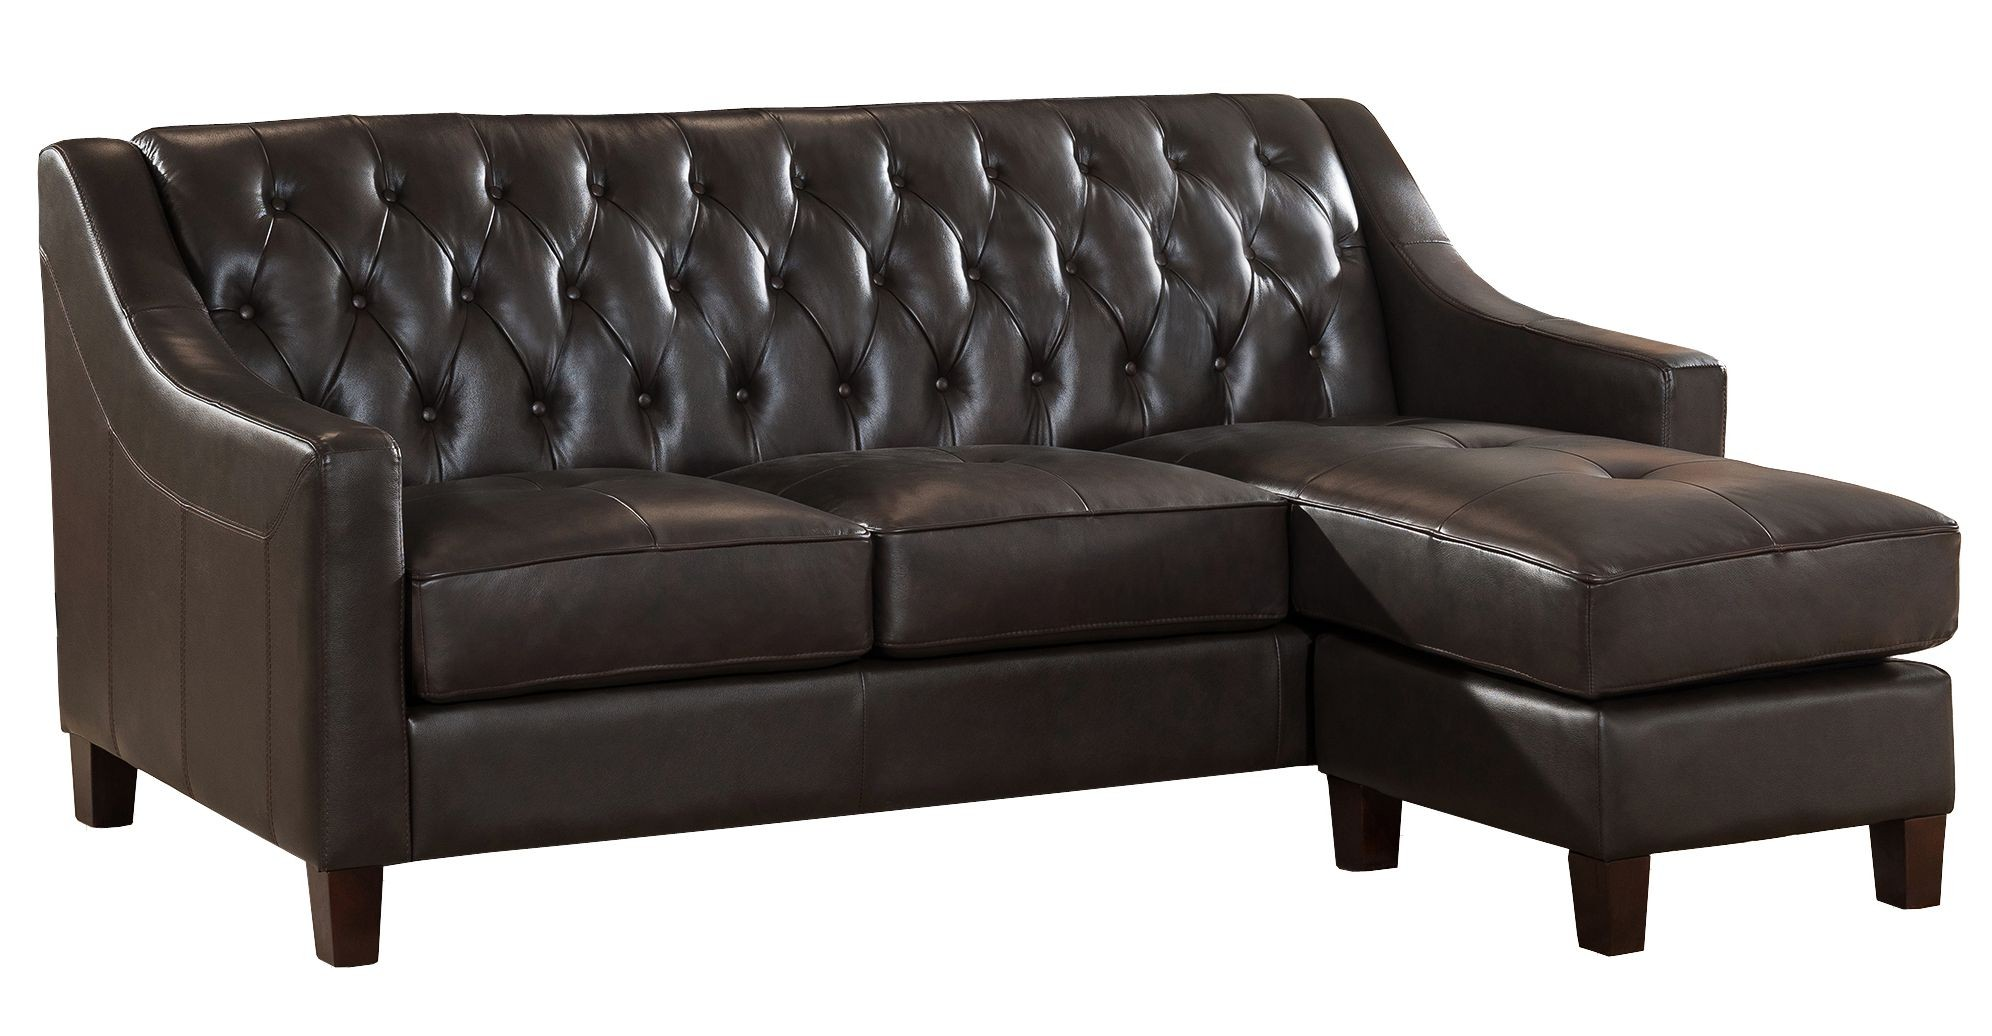 Kaitlyn brown leather reversible sofa chaise from amax for Brown leather chaise